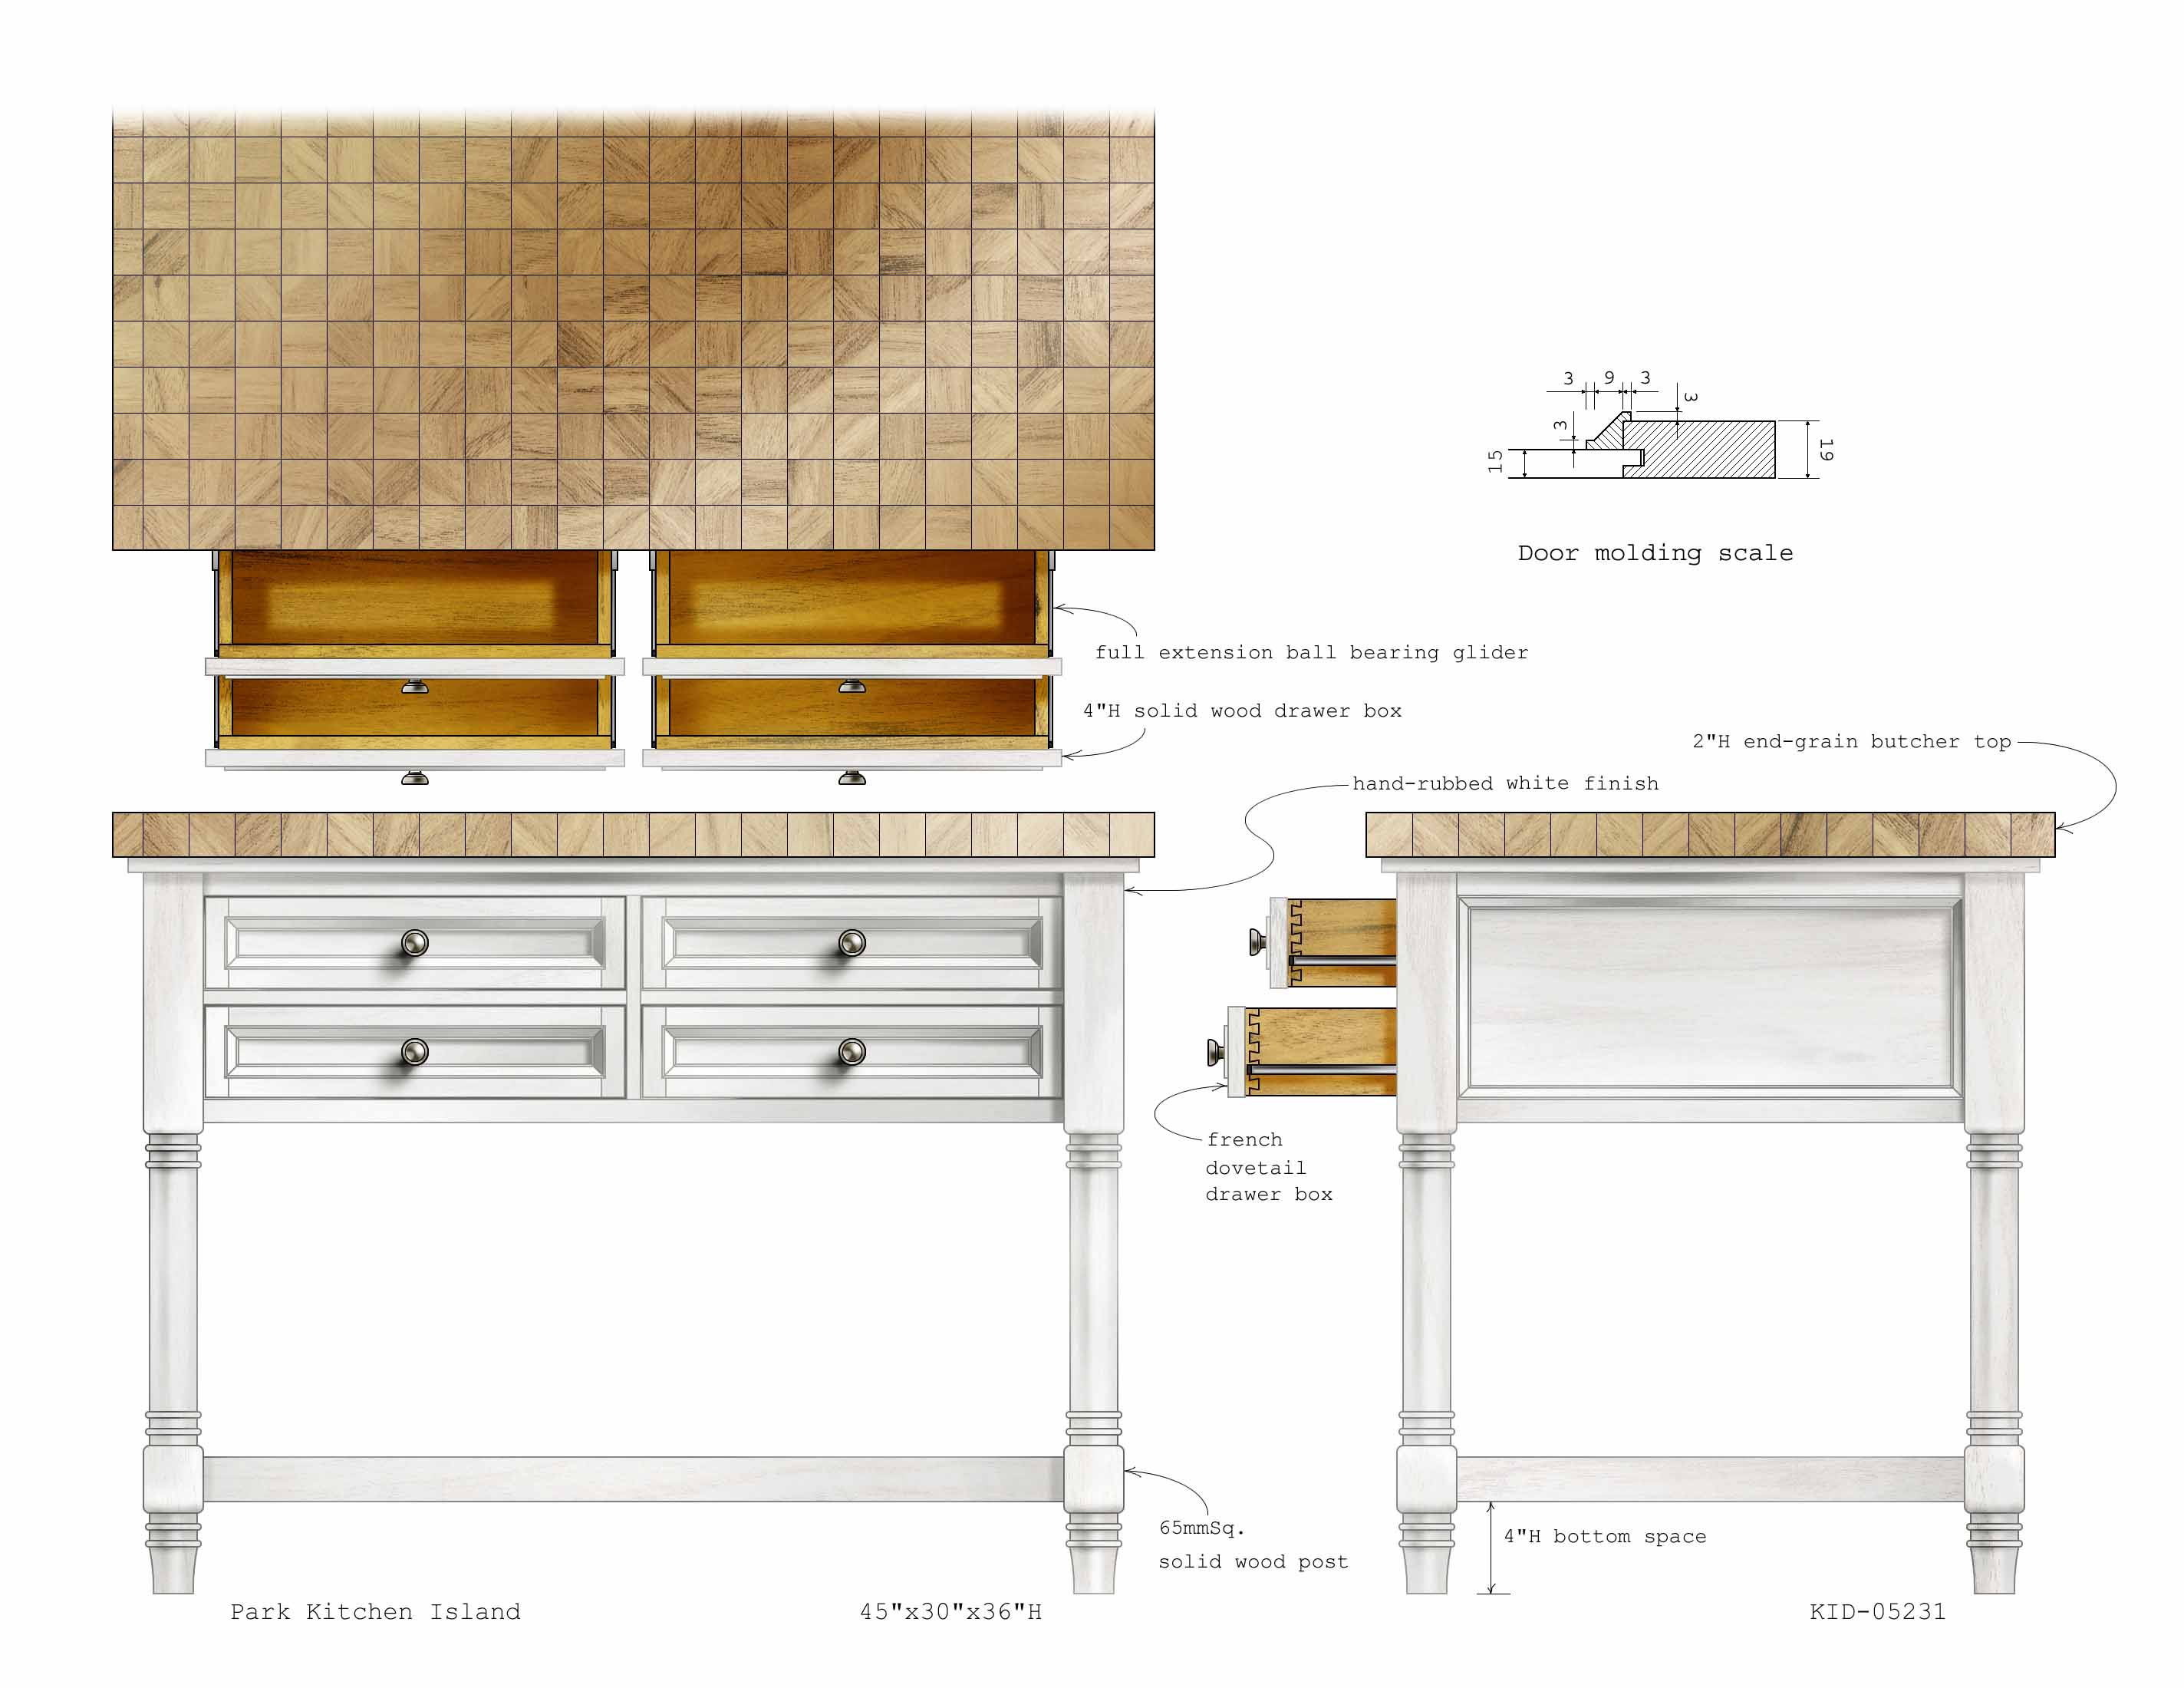 Park Kitchen Island